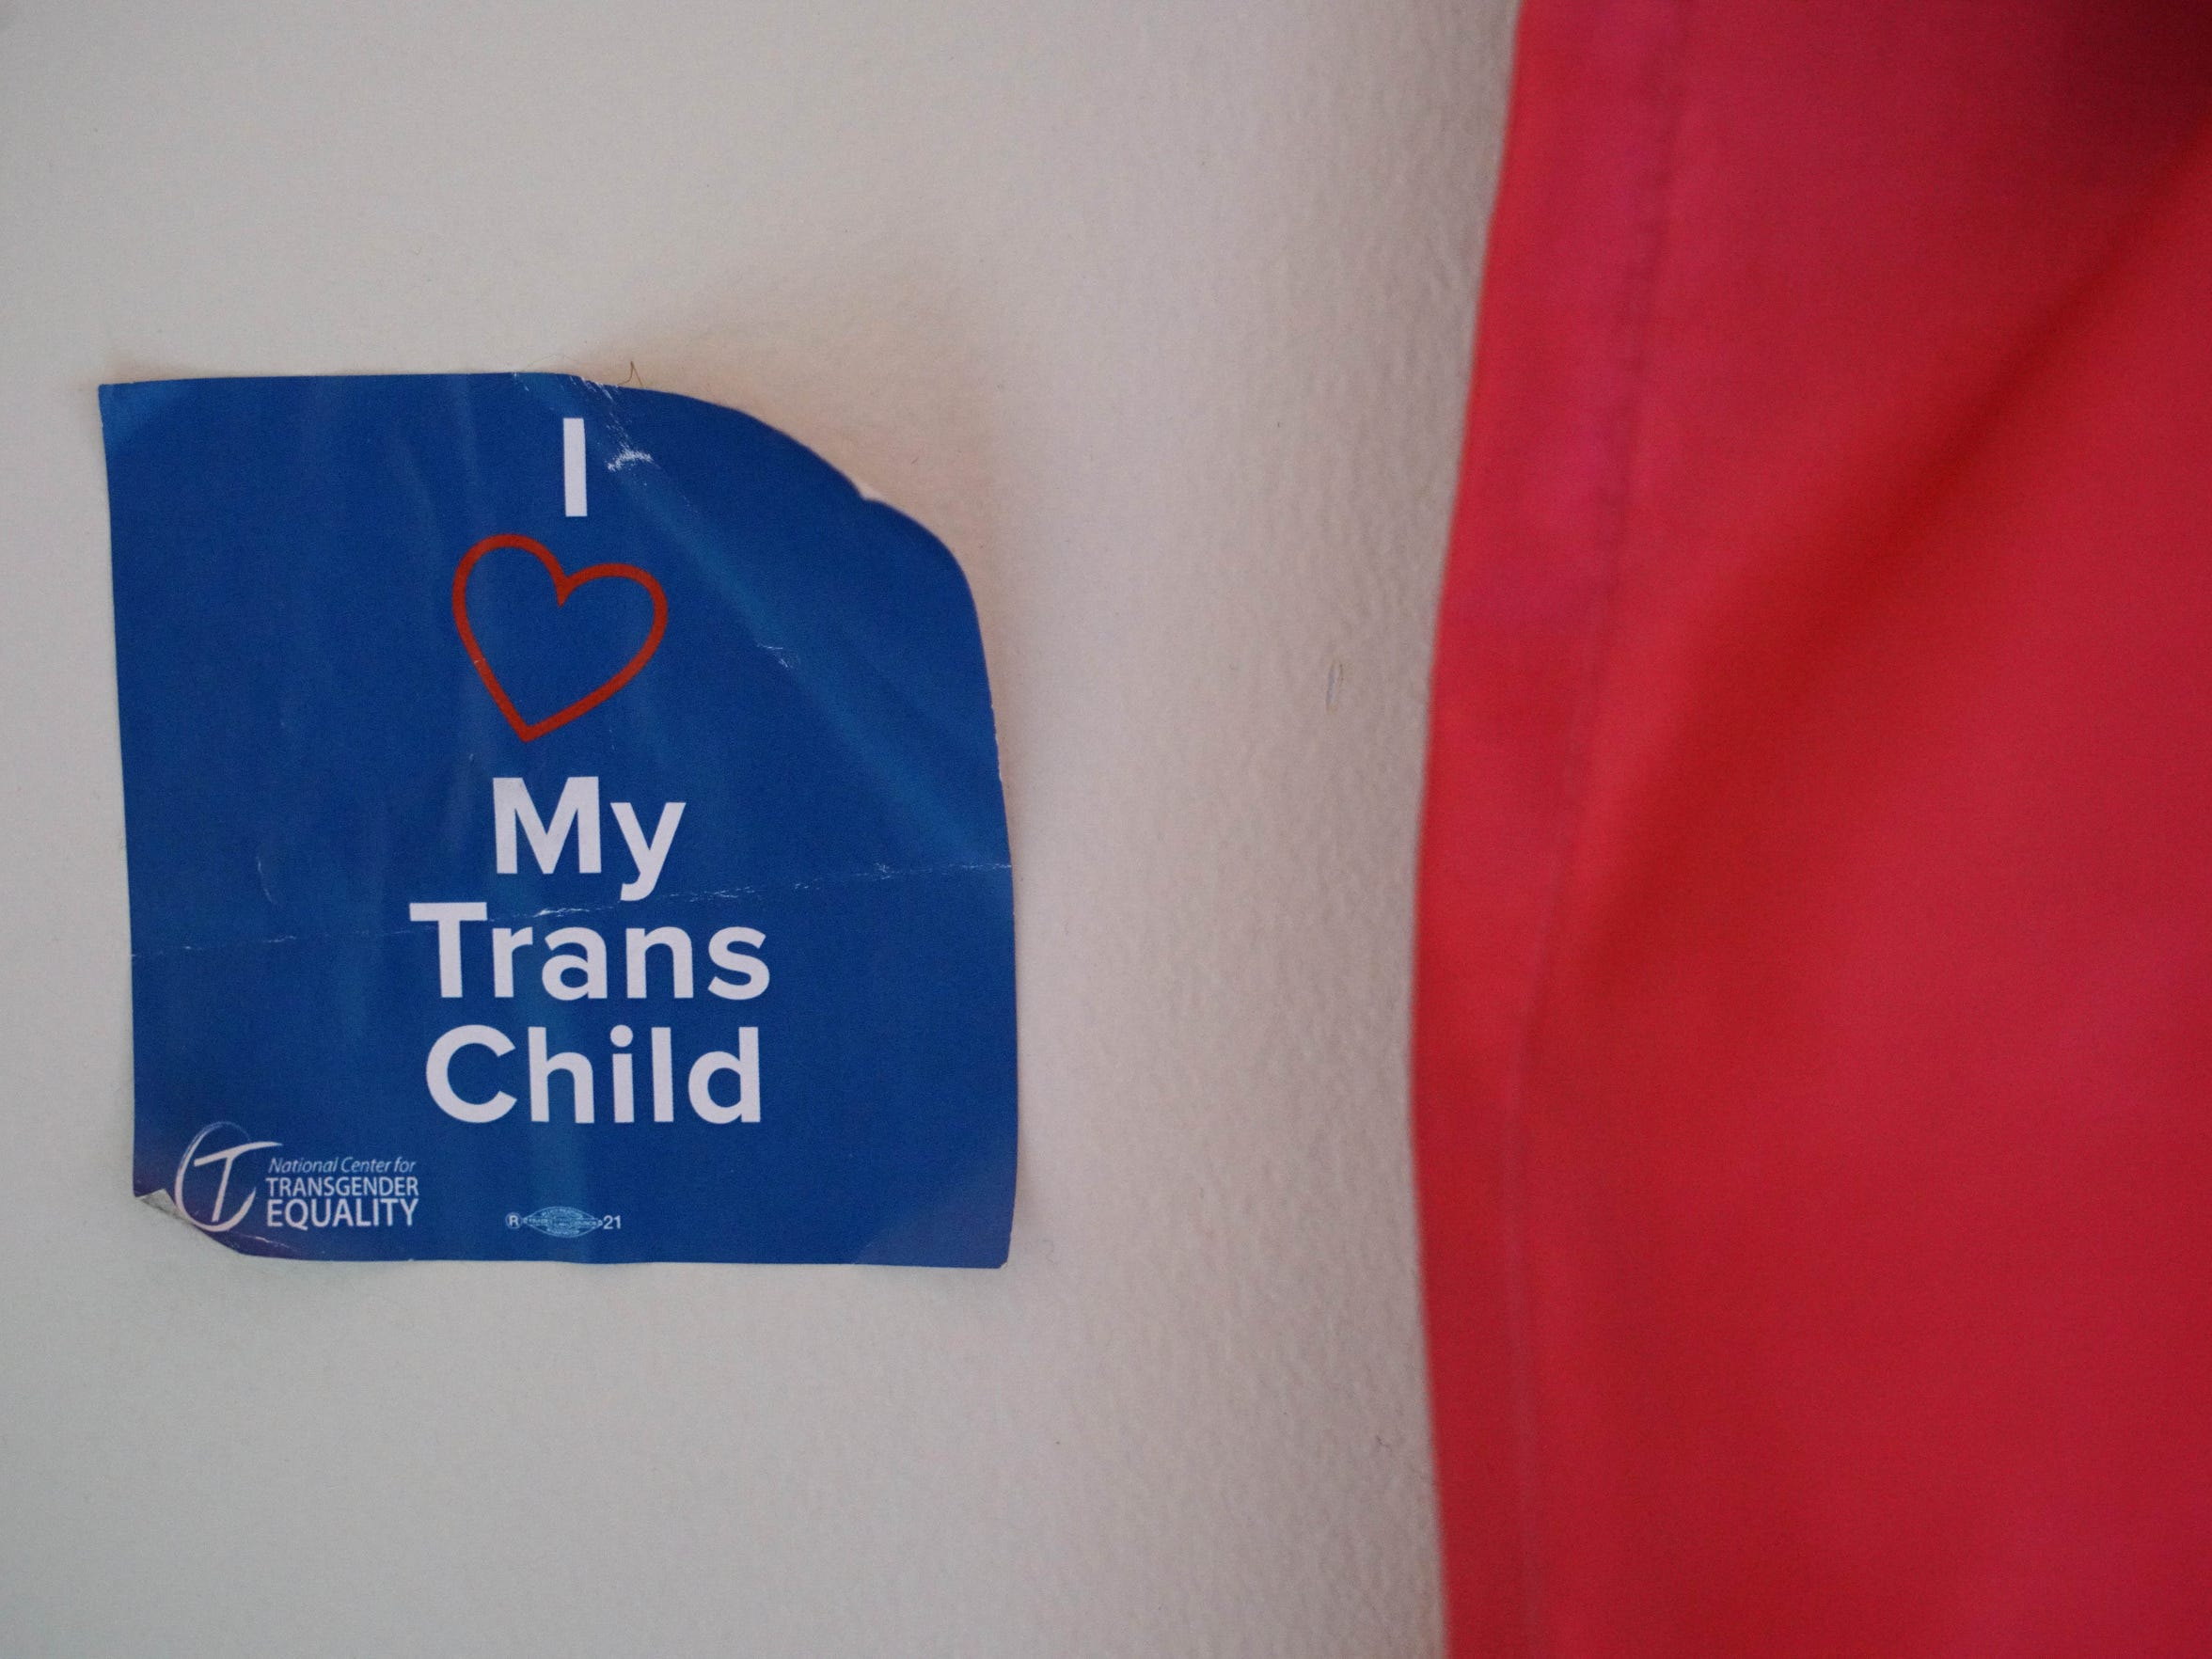 A support for transgender children sticker hangs next to curtains in Trinity's bedroom.